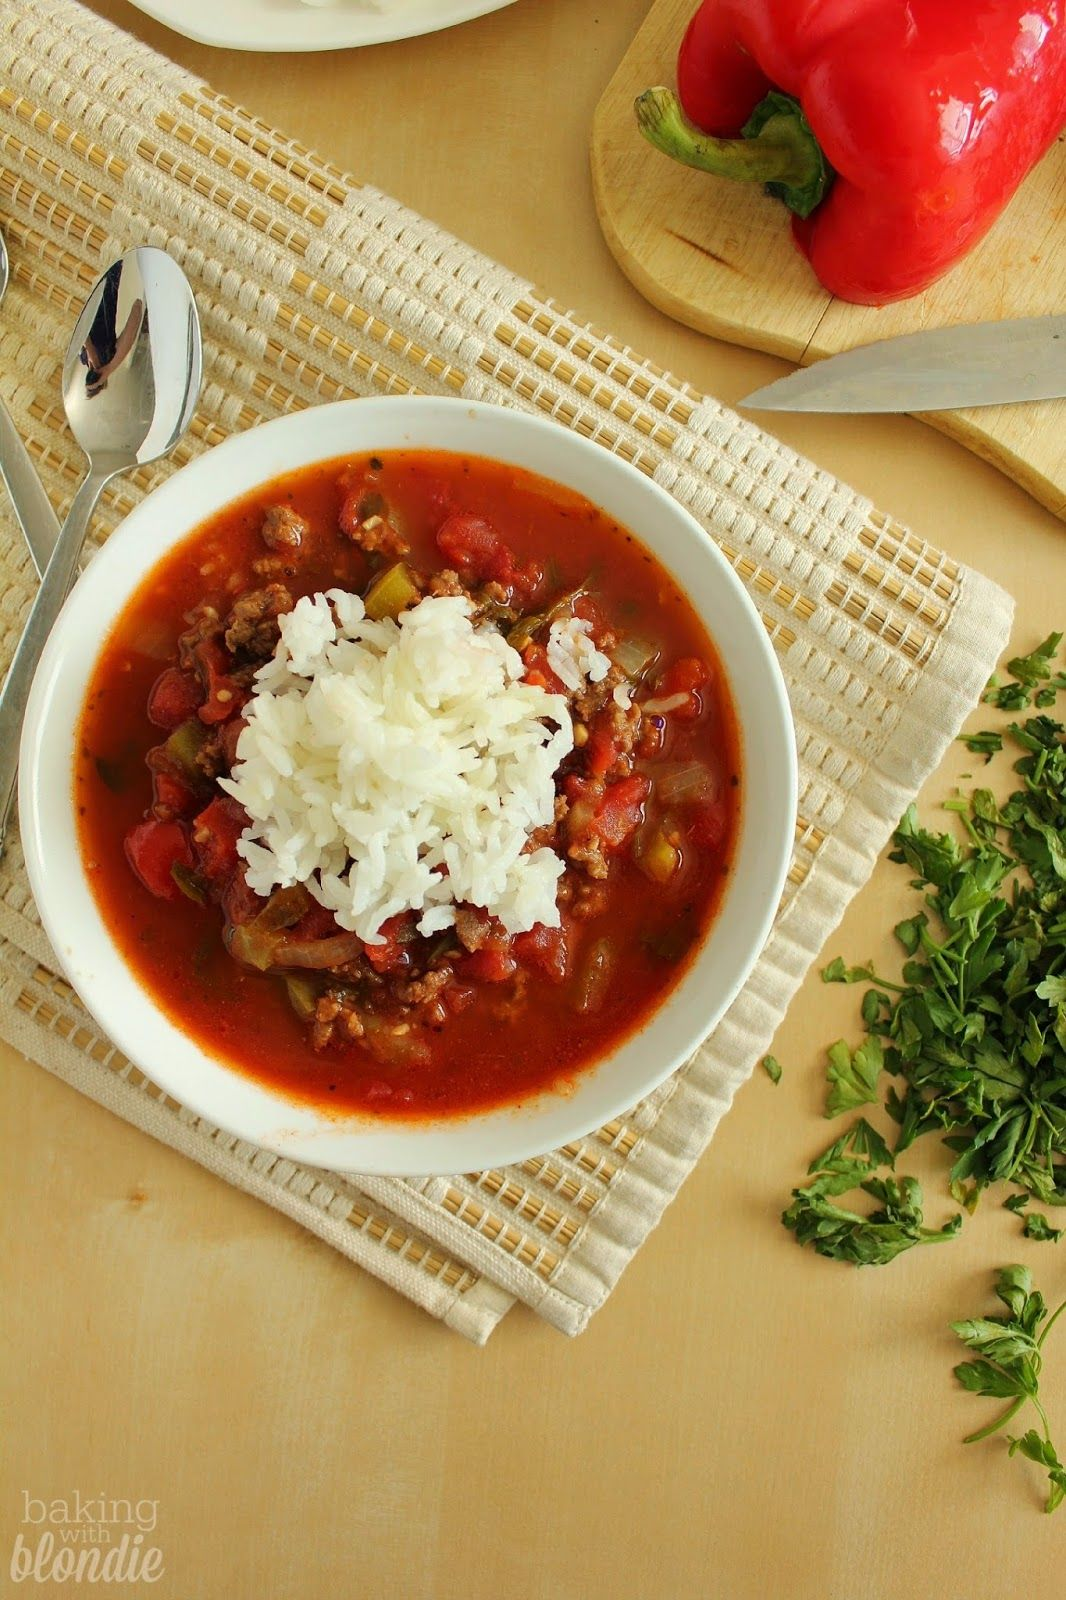 Baking with Blondie : Stuffed Pepper Soup